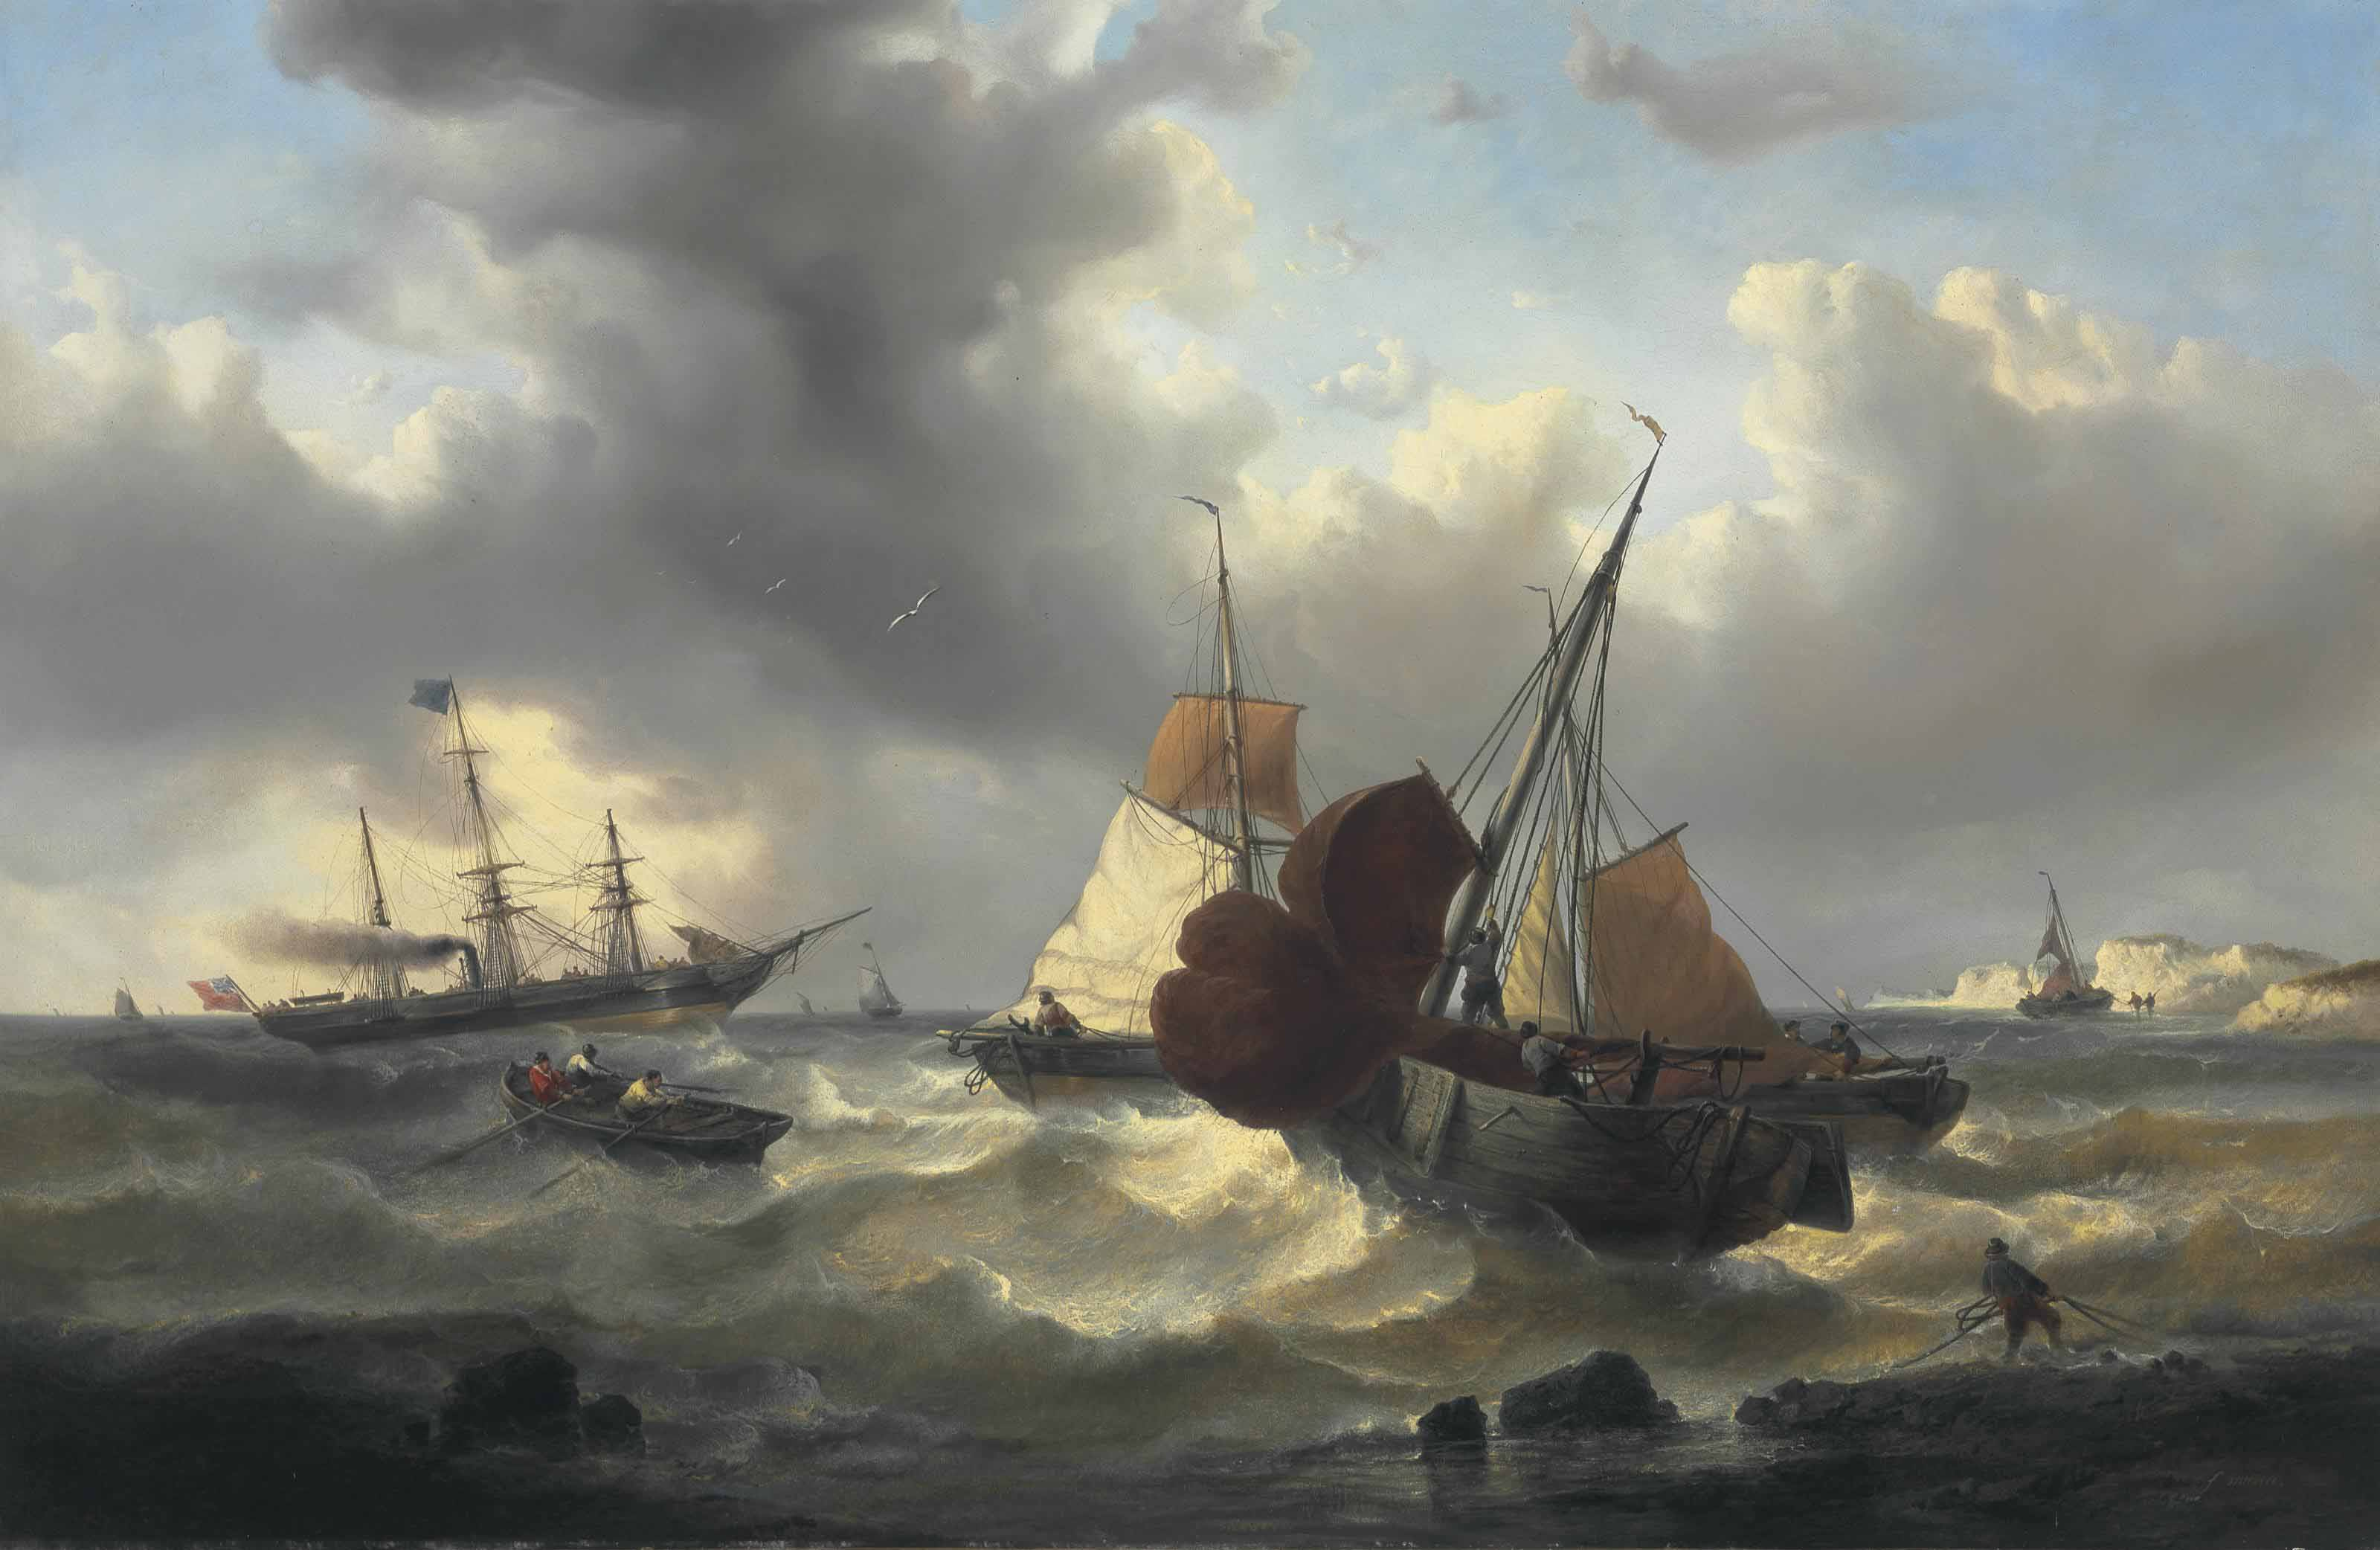 Shipping off the Coast in Choppy Seas